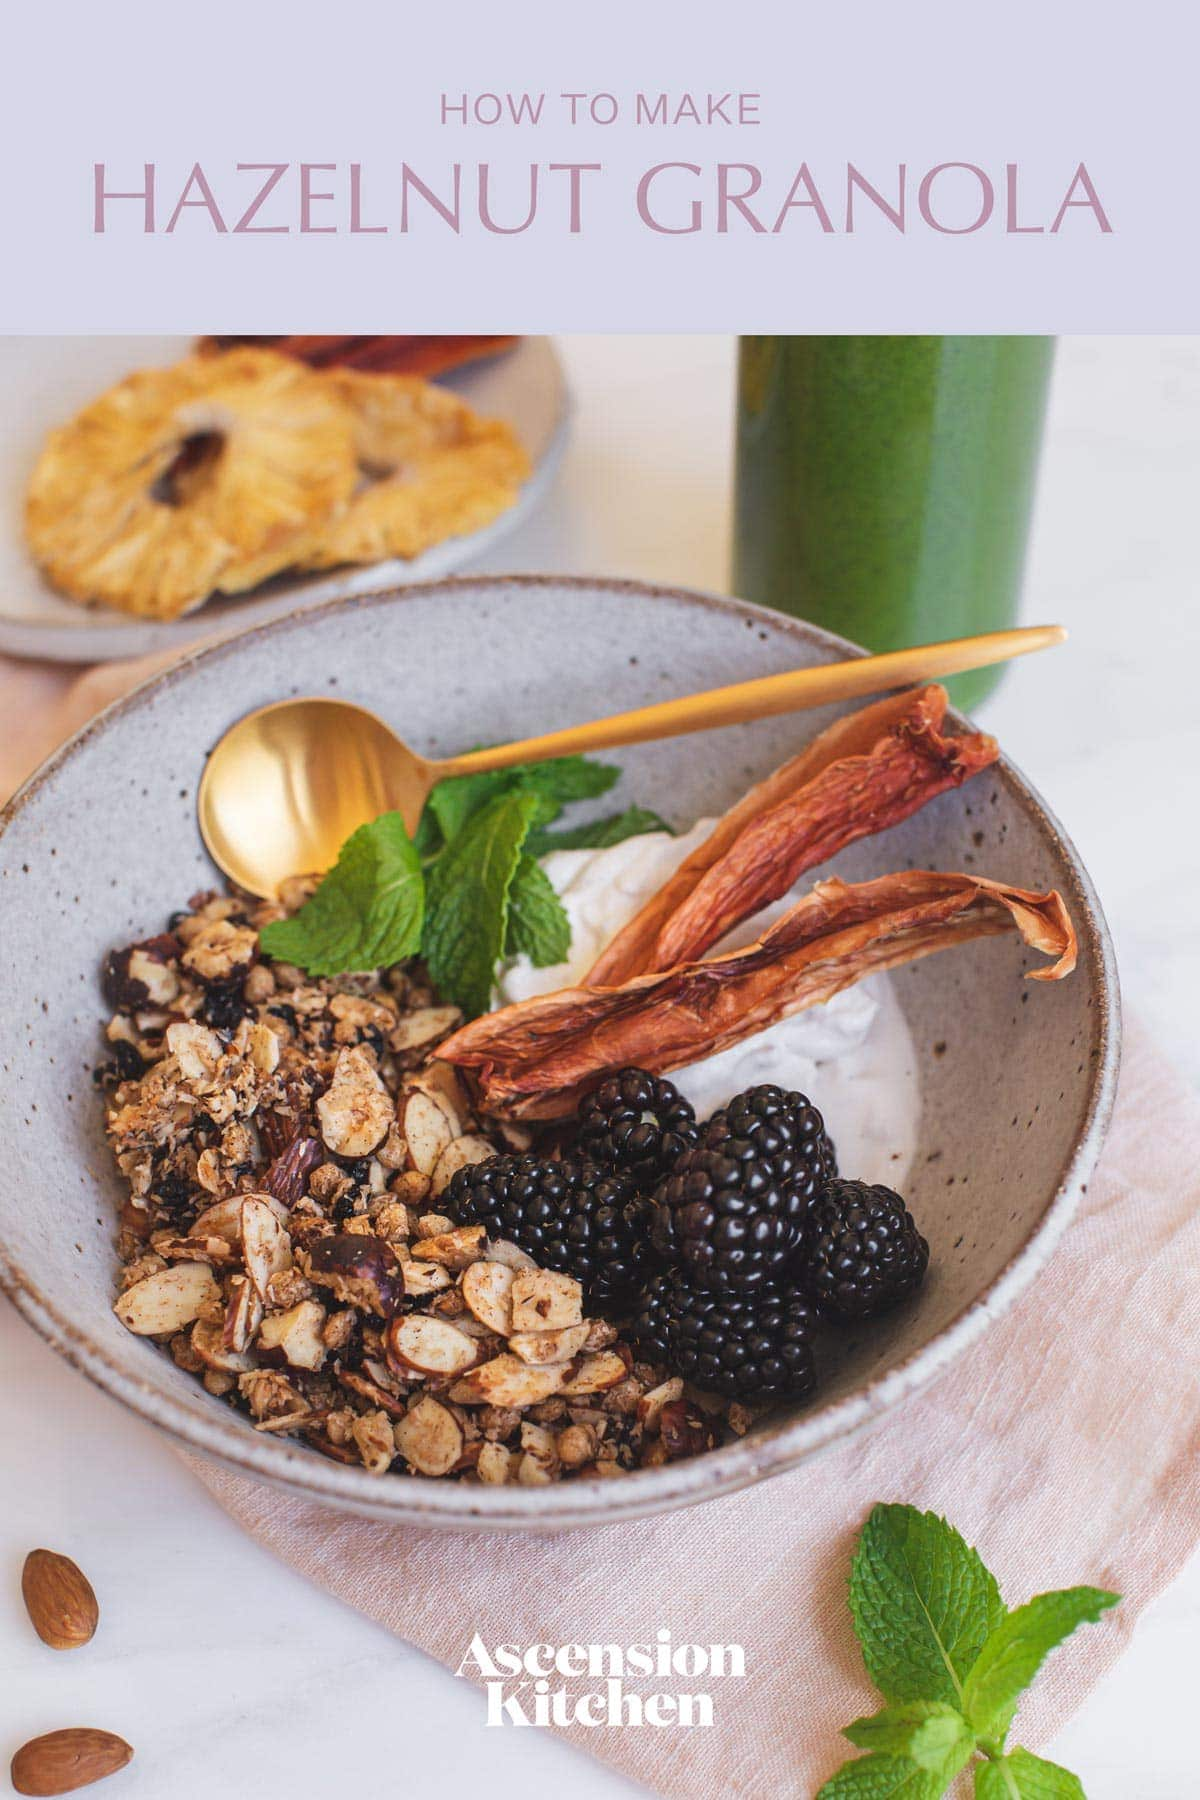 Styled bowl of granola and fruit with the recipe title printed over the top.